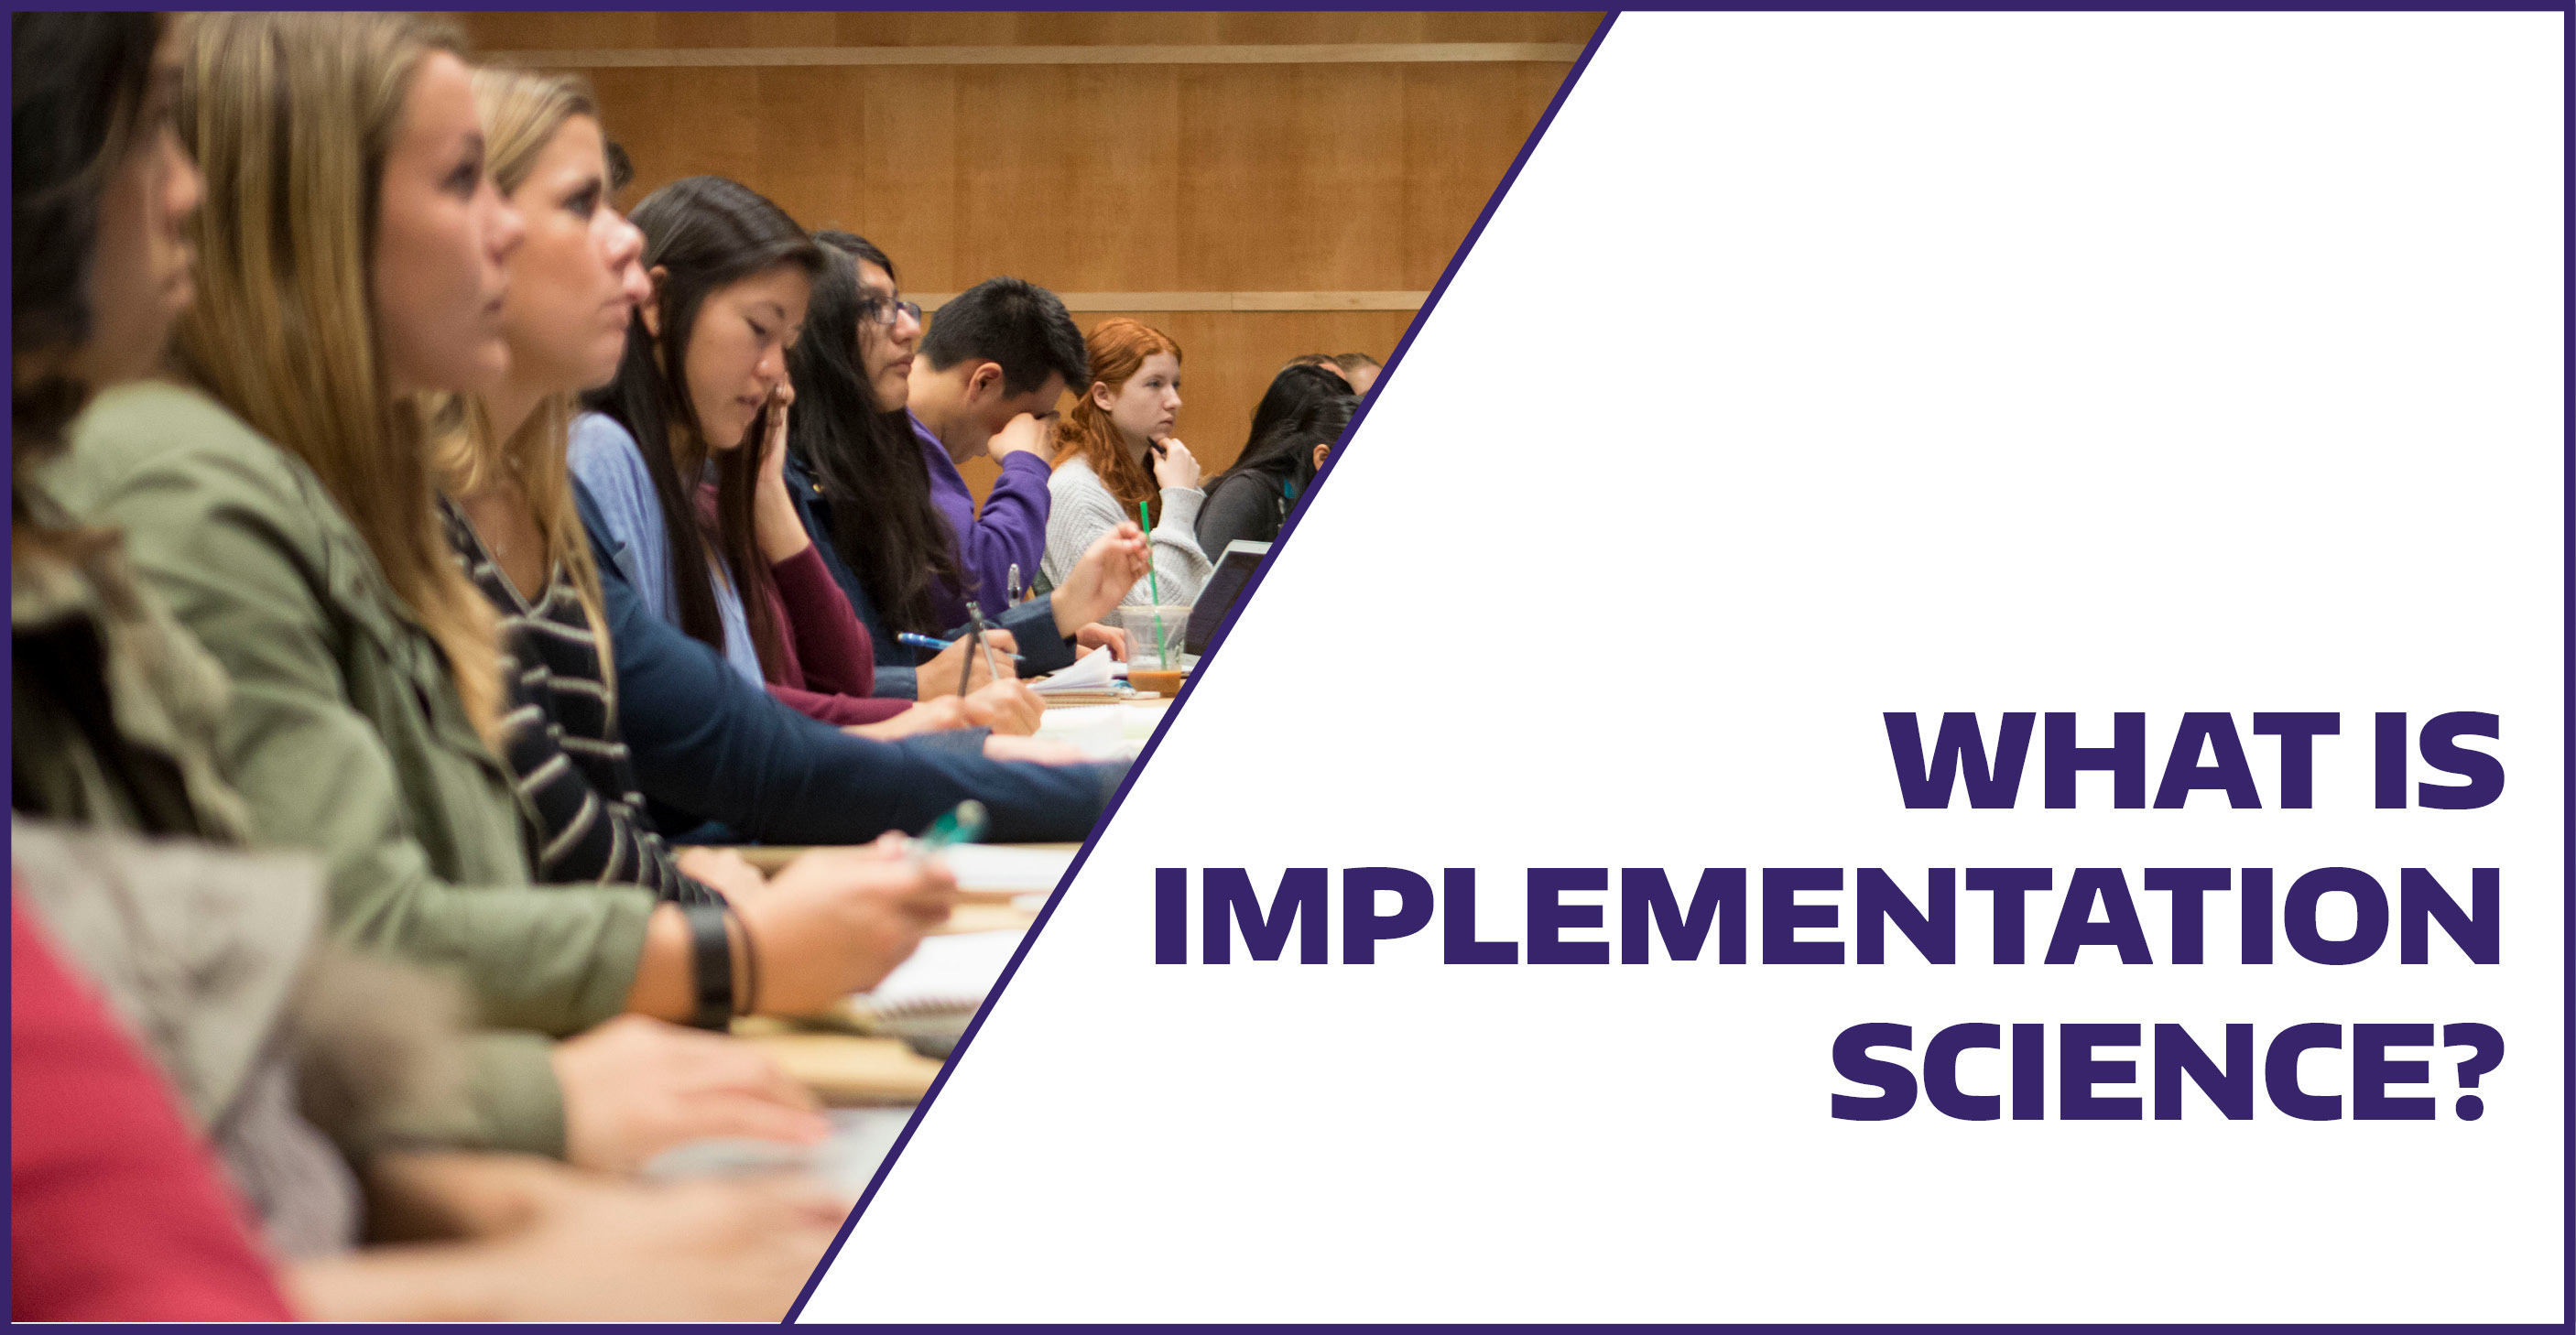 What is implementation science?